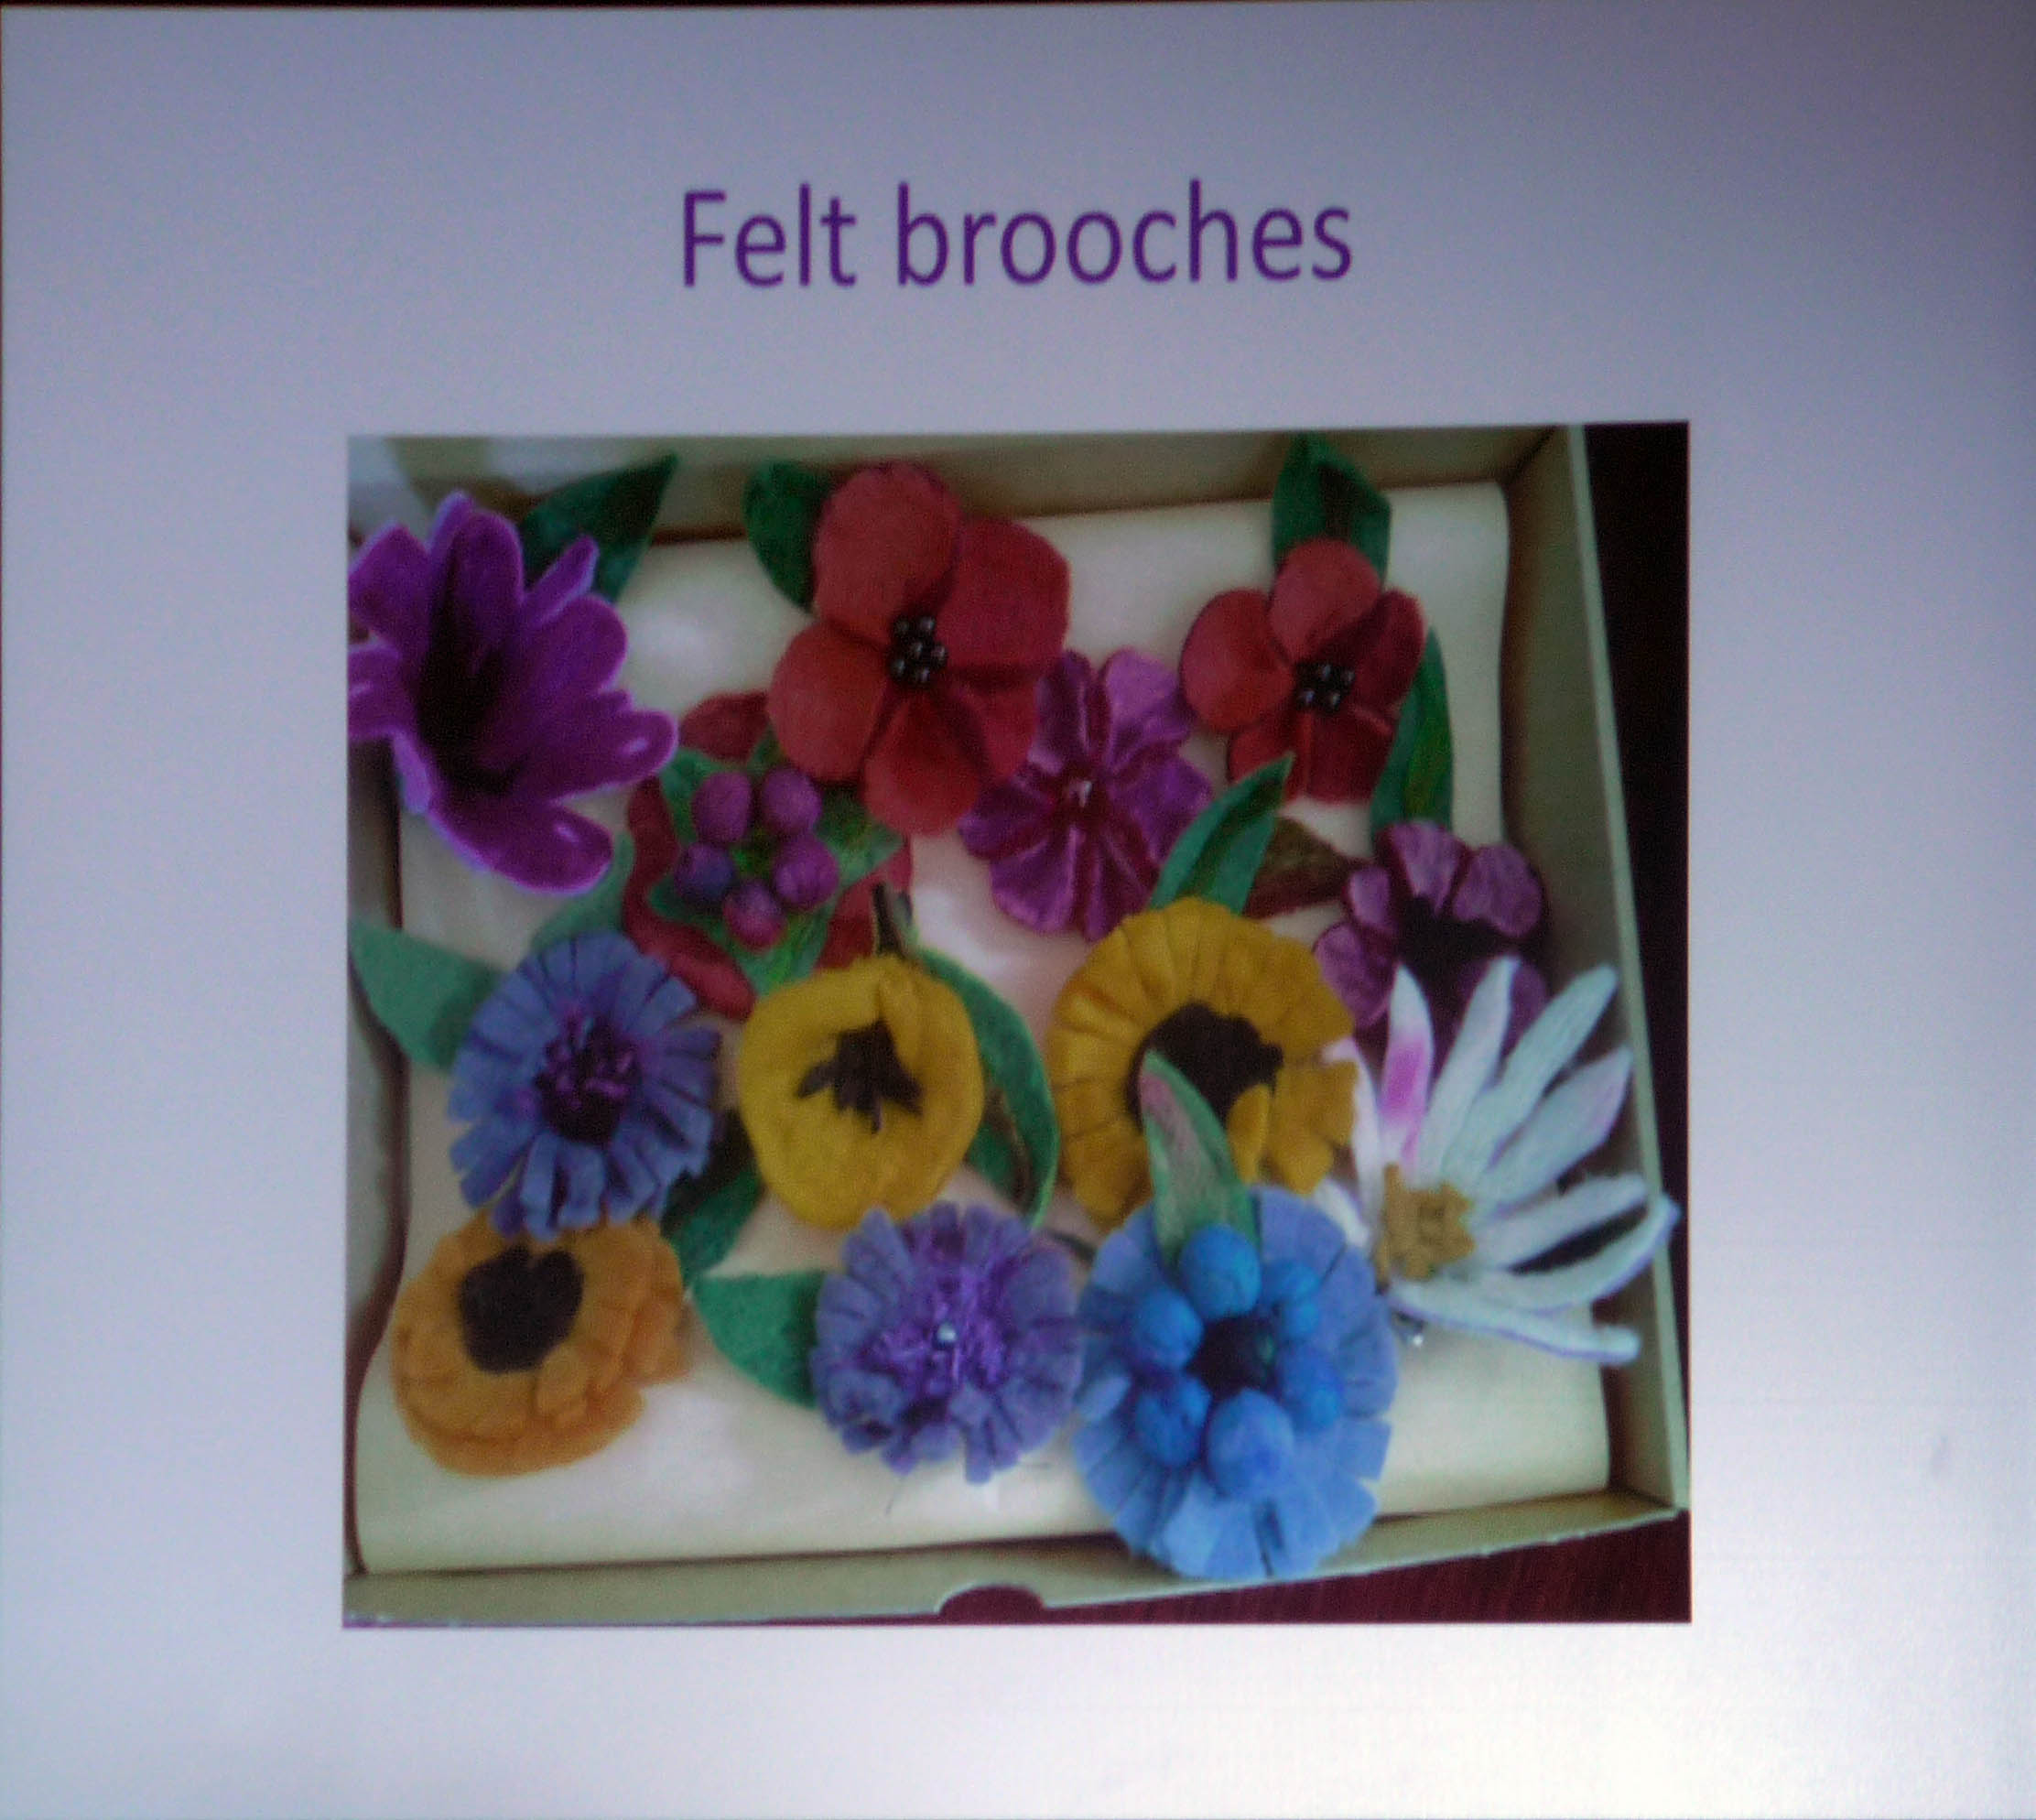 slide showing felt brooches made by members of Wirral Society of the Blind and Partially Sighted